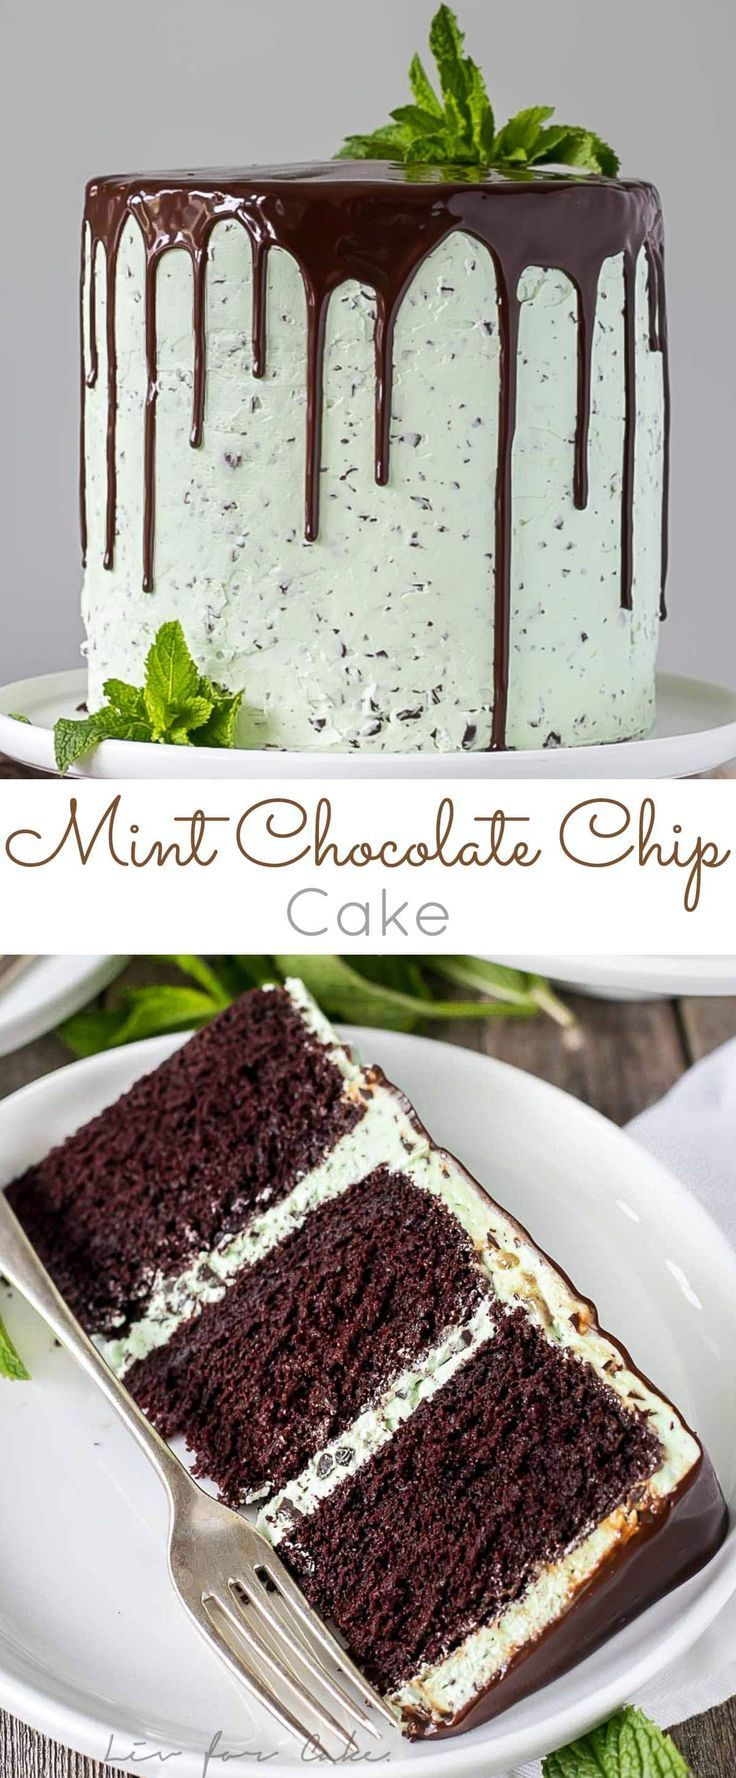 This Mint Chocolate Chip Cake is a mint lover's dream! Layers of decadent chocolate cake topped with a silky mint chip buttercream. | livforcake.com via @livforcake Come and see our new website at bakedcomfortfood.com!